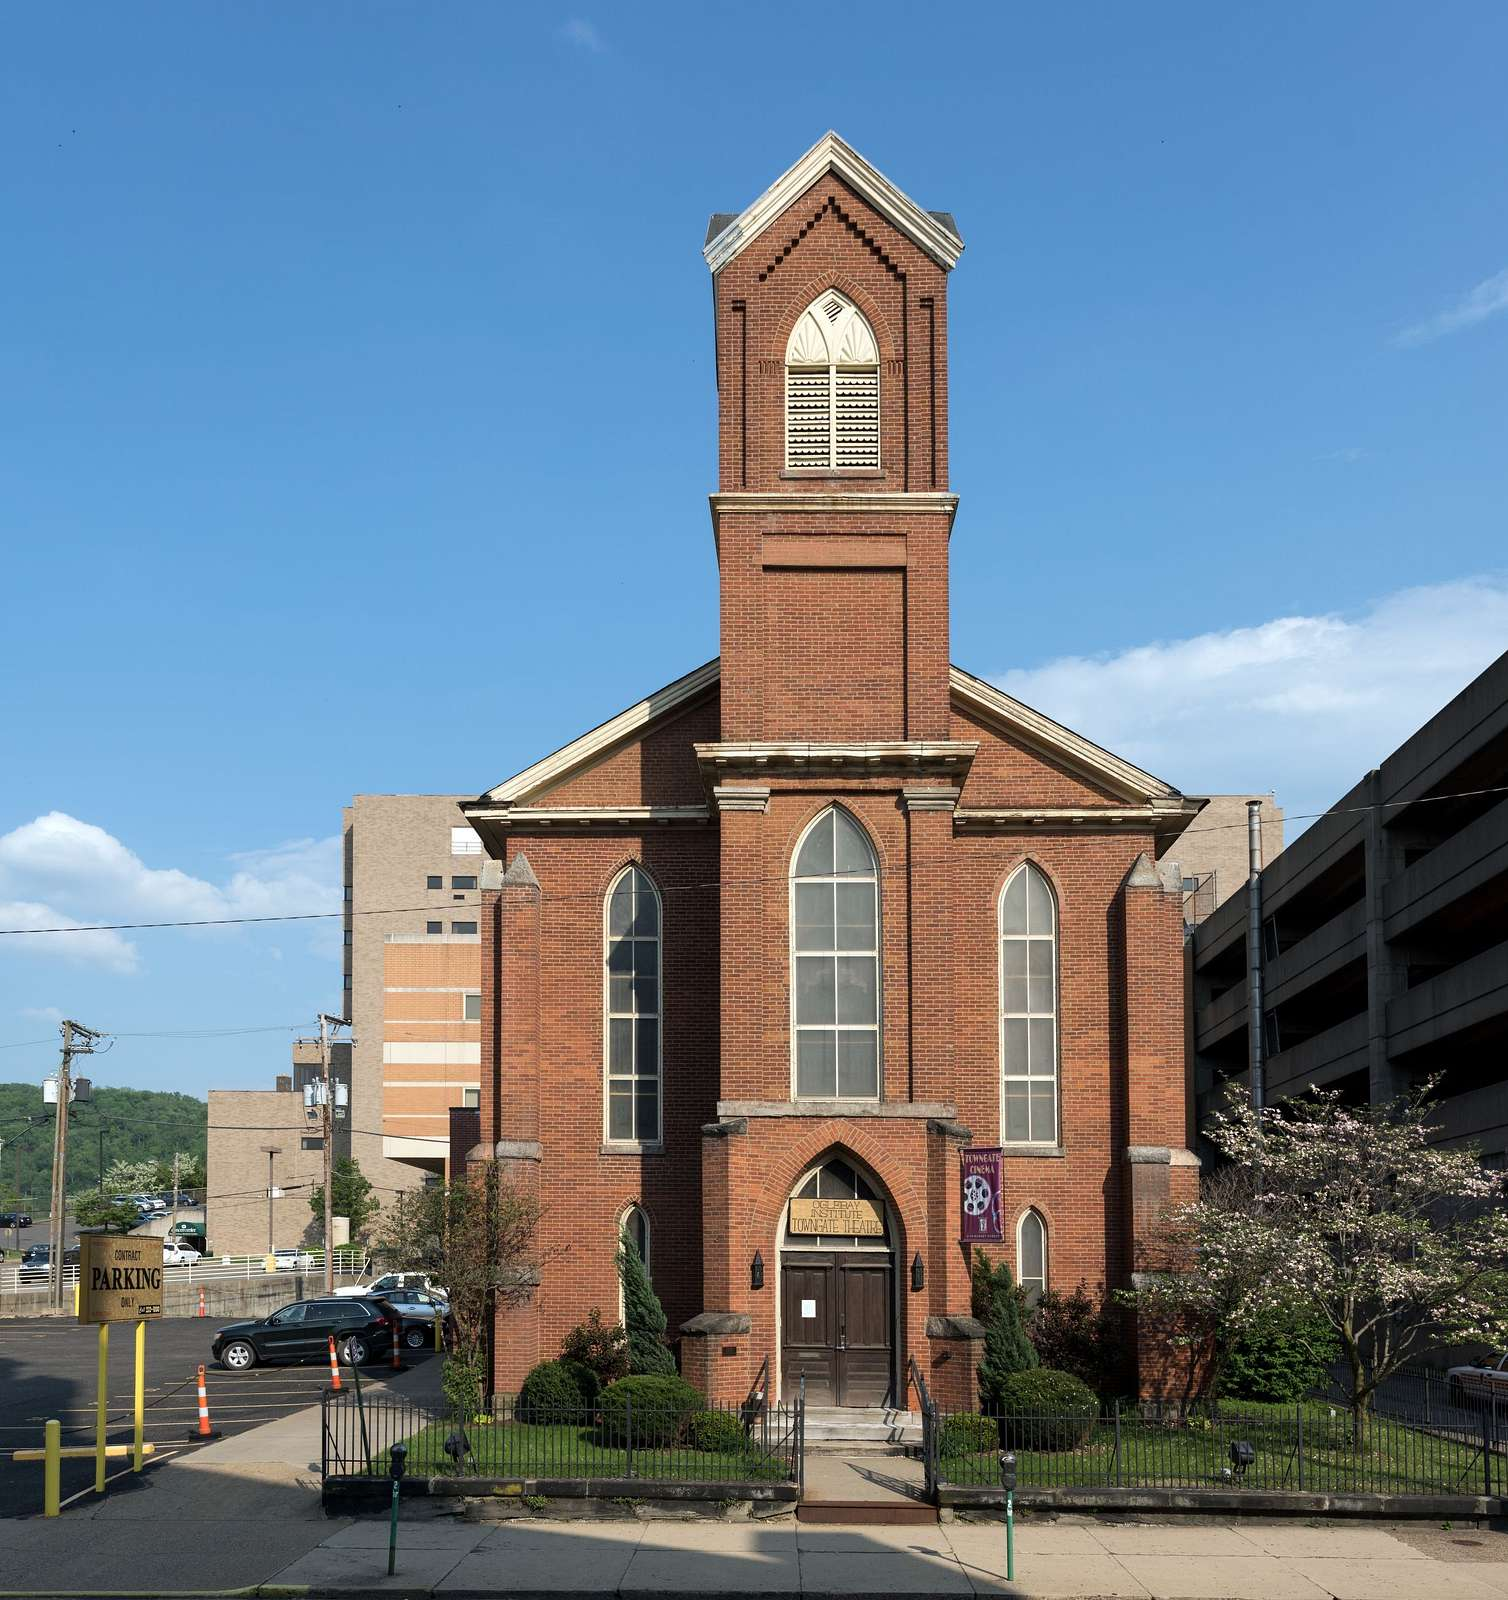 The Towngate Theater Building, which was built c. 1850 and long served as the First German Zion Evangelical Lutheran Church in downtown Wheeling, West Virginia